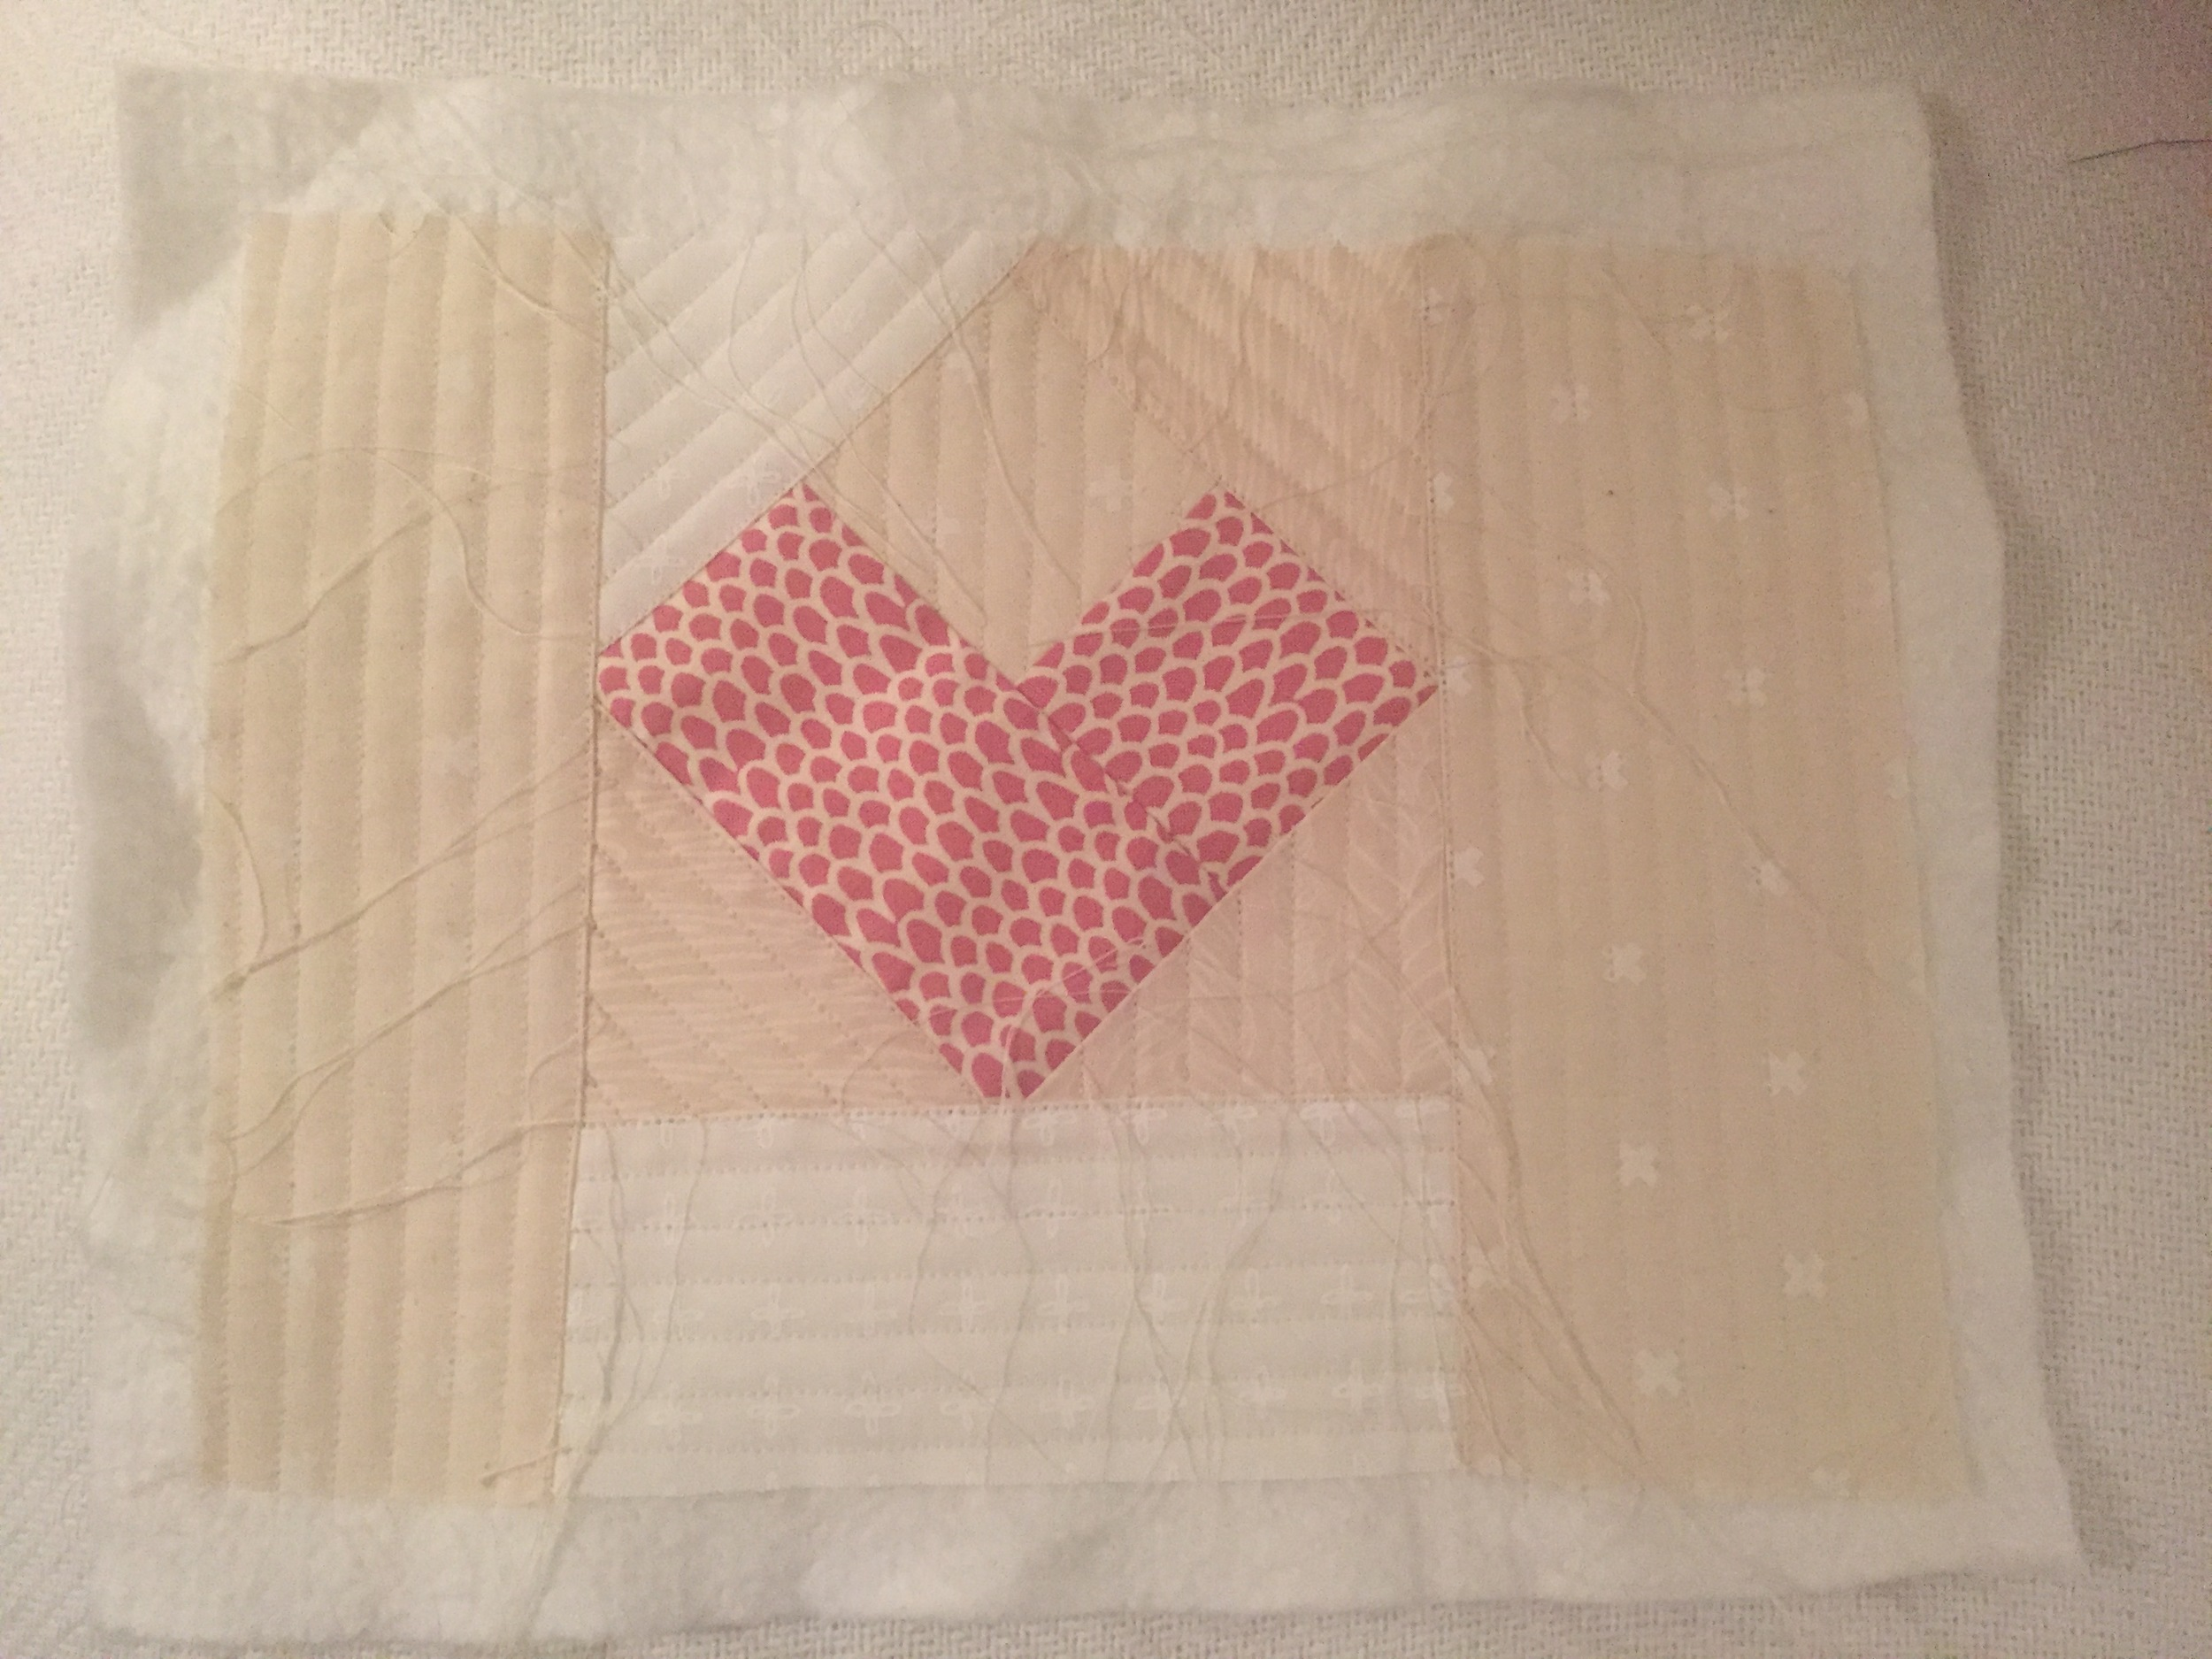 quilted! I sent this pic to a friend and she said it made her feel like she needed to floss.